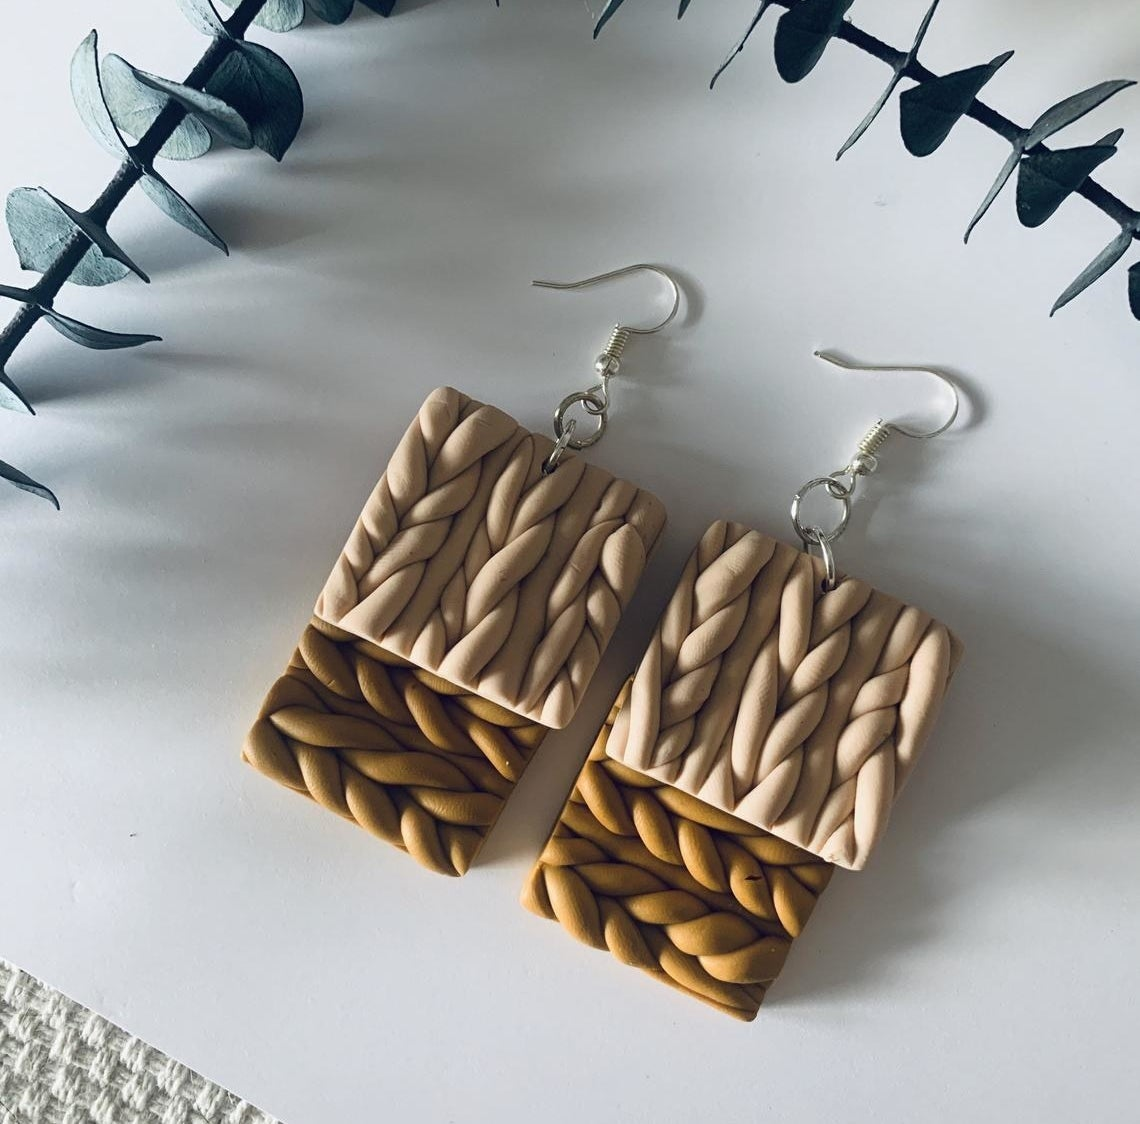 Two pairs of dangly cable knit earrings on top of each other